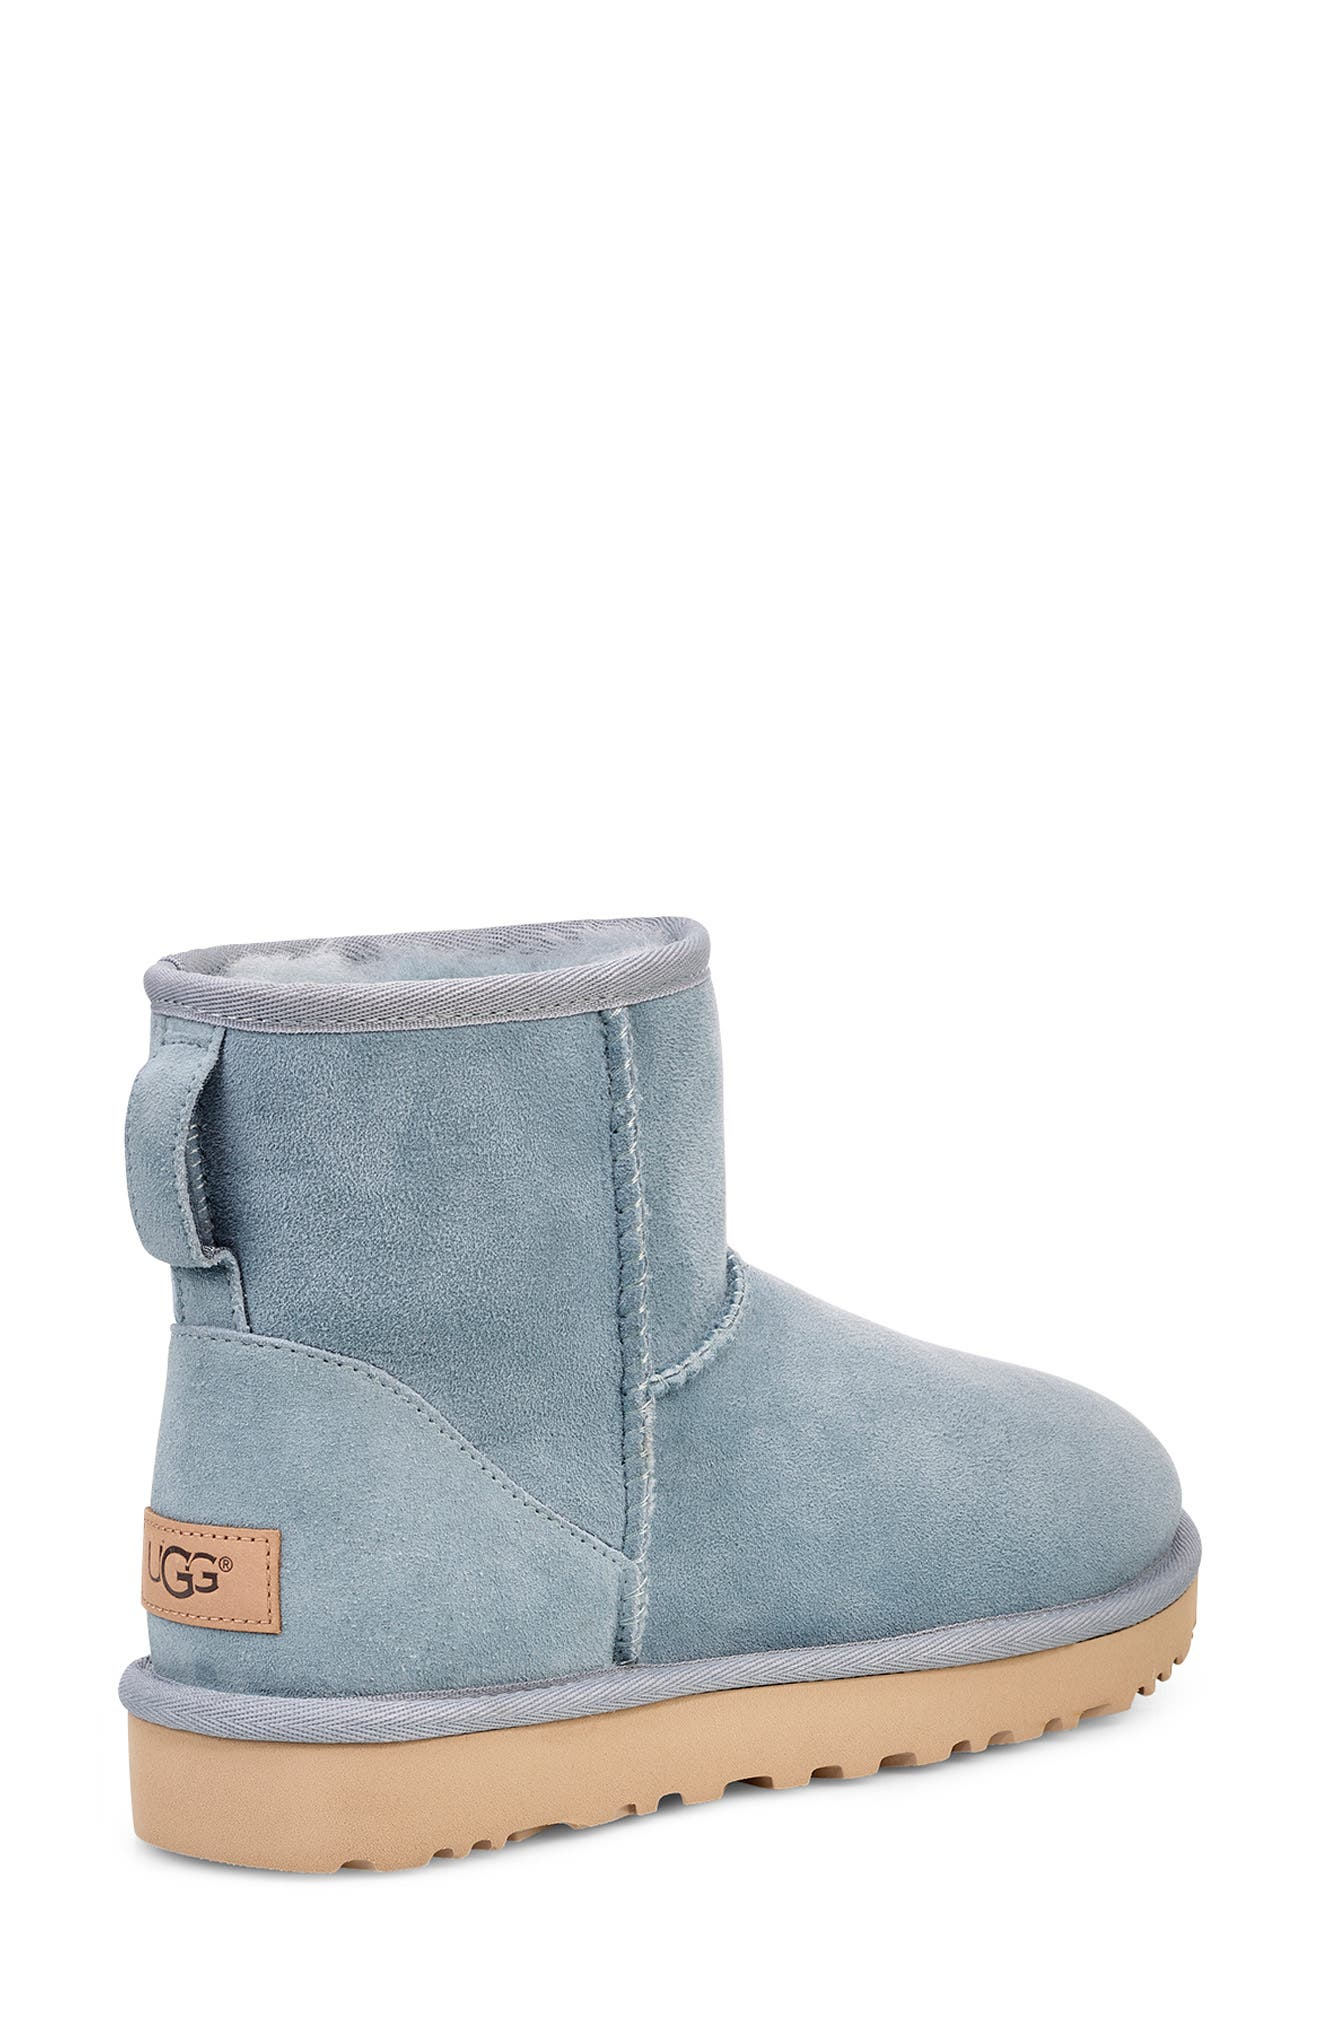 'Classic Mini II' Genuine Shearling Lined Boot,                             Alternate thumbnail 2, color,                             SUCCULENT SUEDE